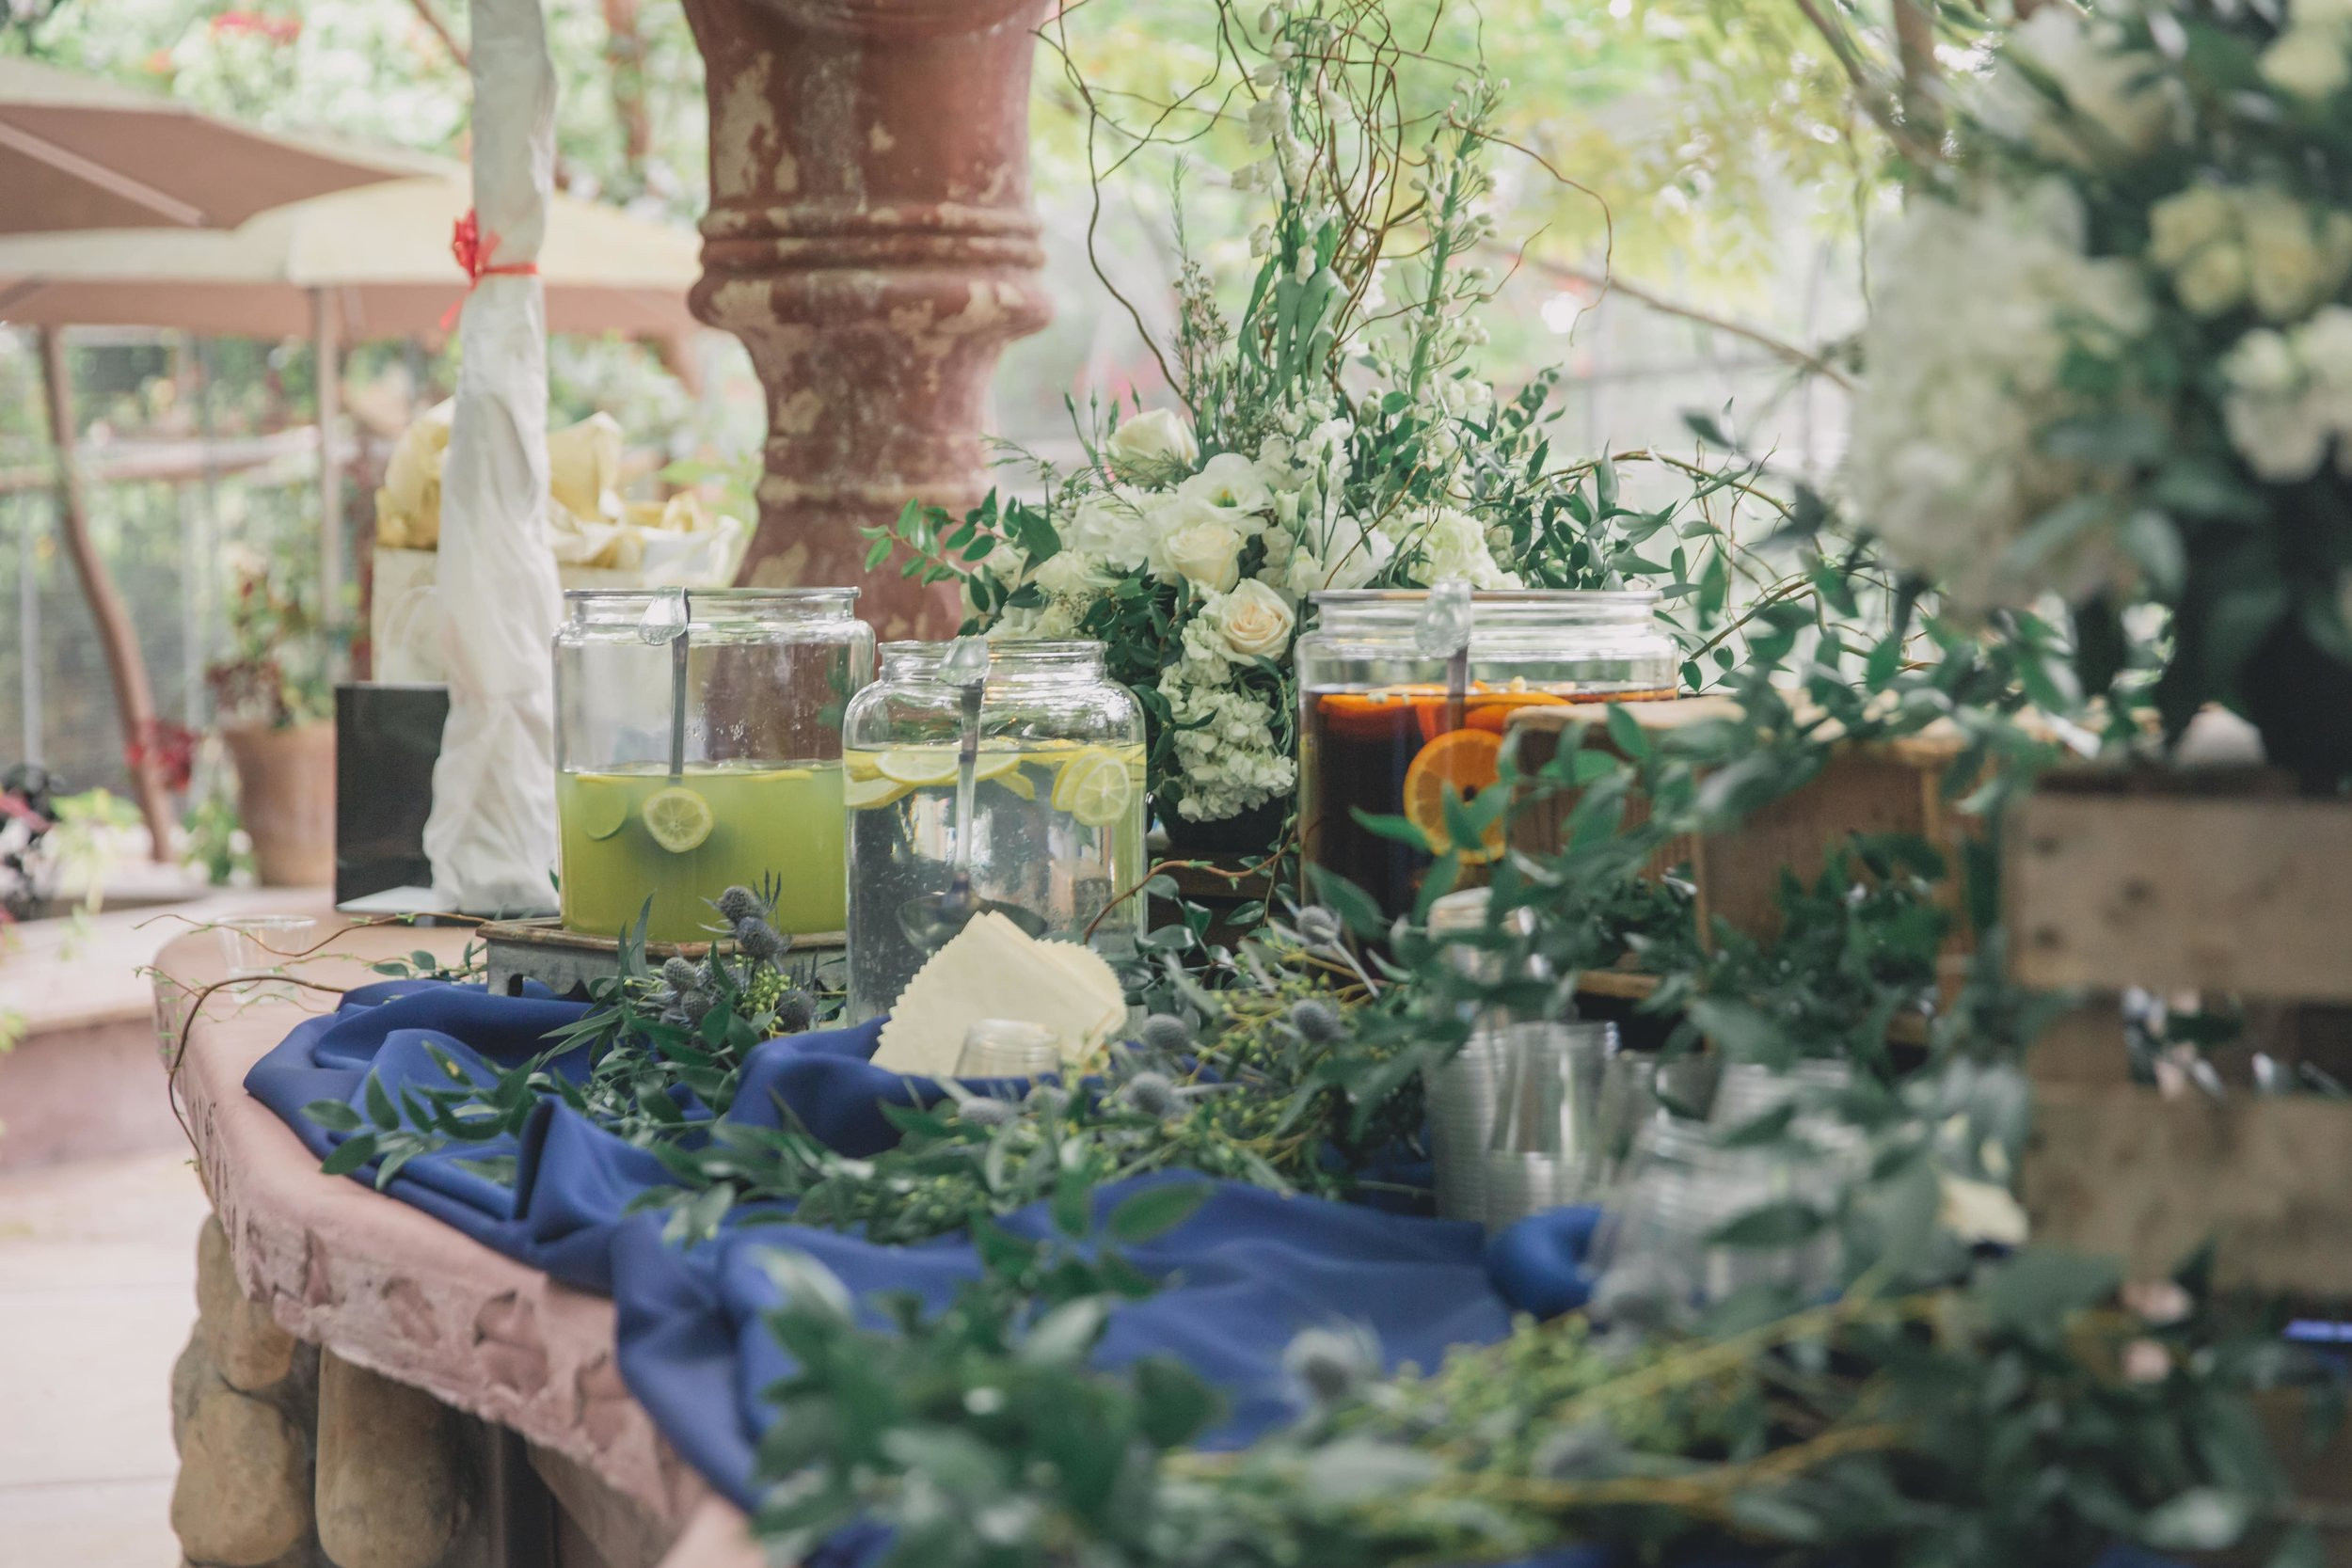 Ways to keep guests cool at your warm-weather wedding - A table decorated with flowers and greenery at an outdoor wedding ceremony stocked with refreshments.